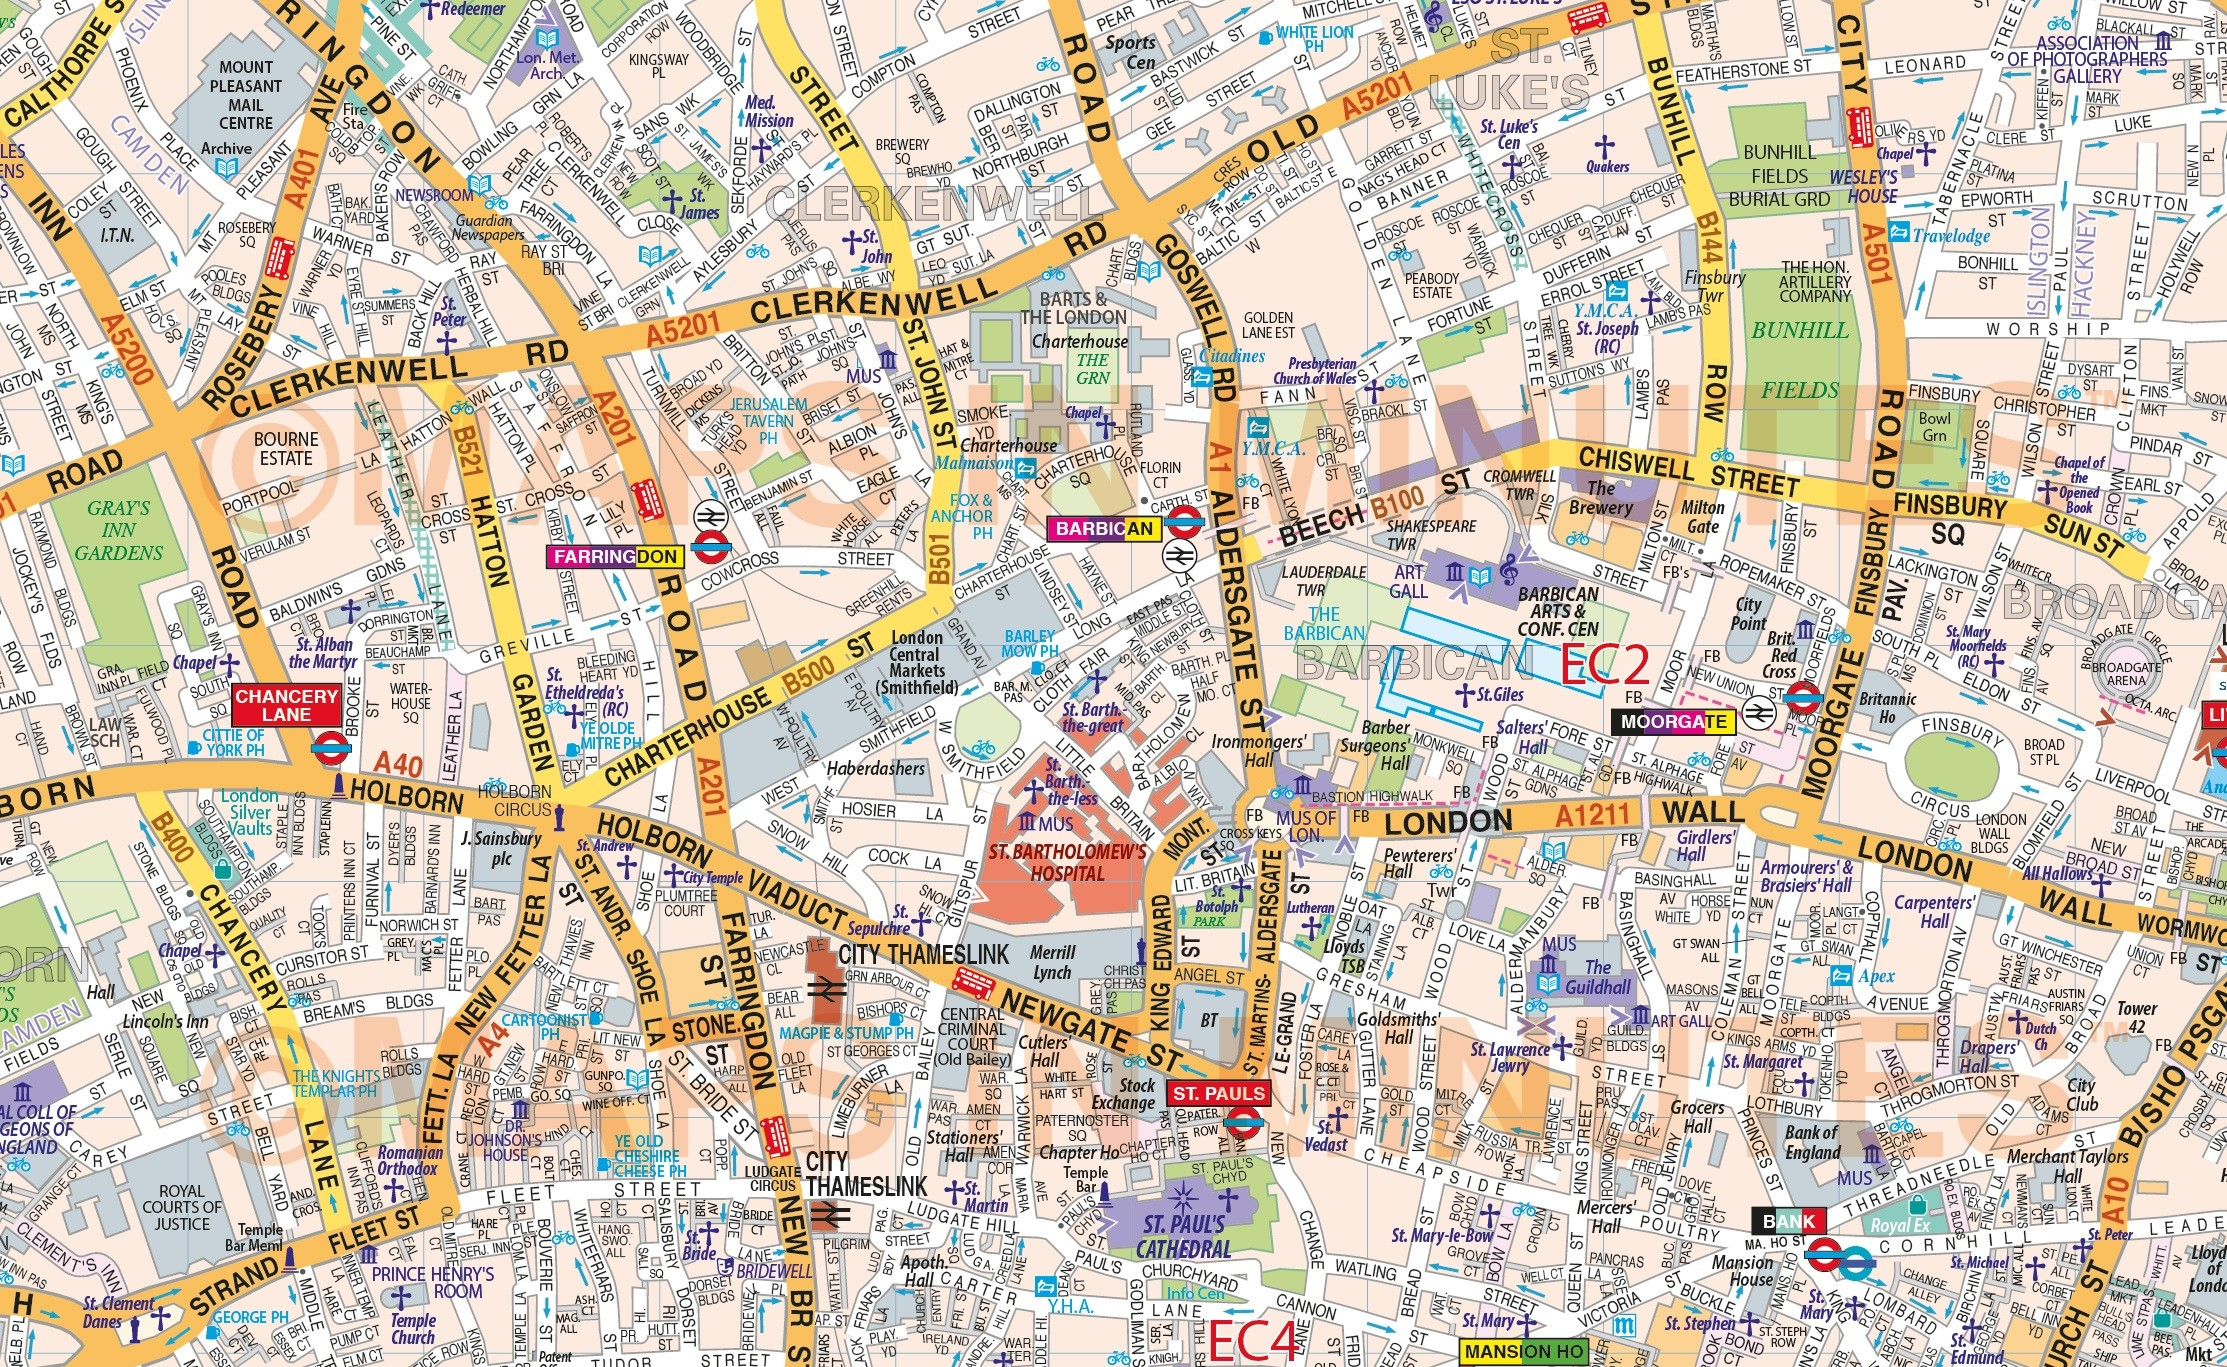 Vinyl Central London Street Map Large Size 1 2m D X 1 67m W